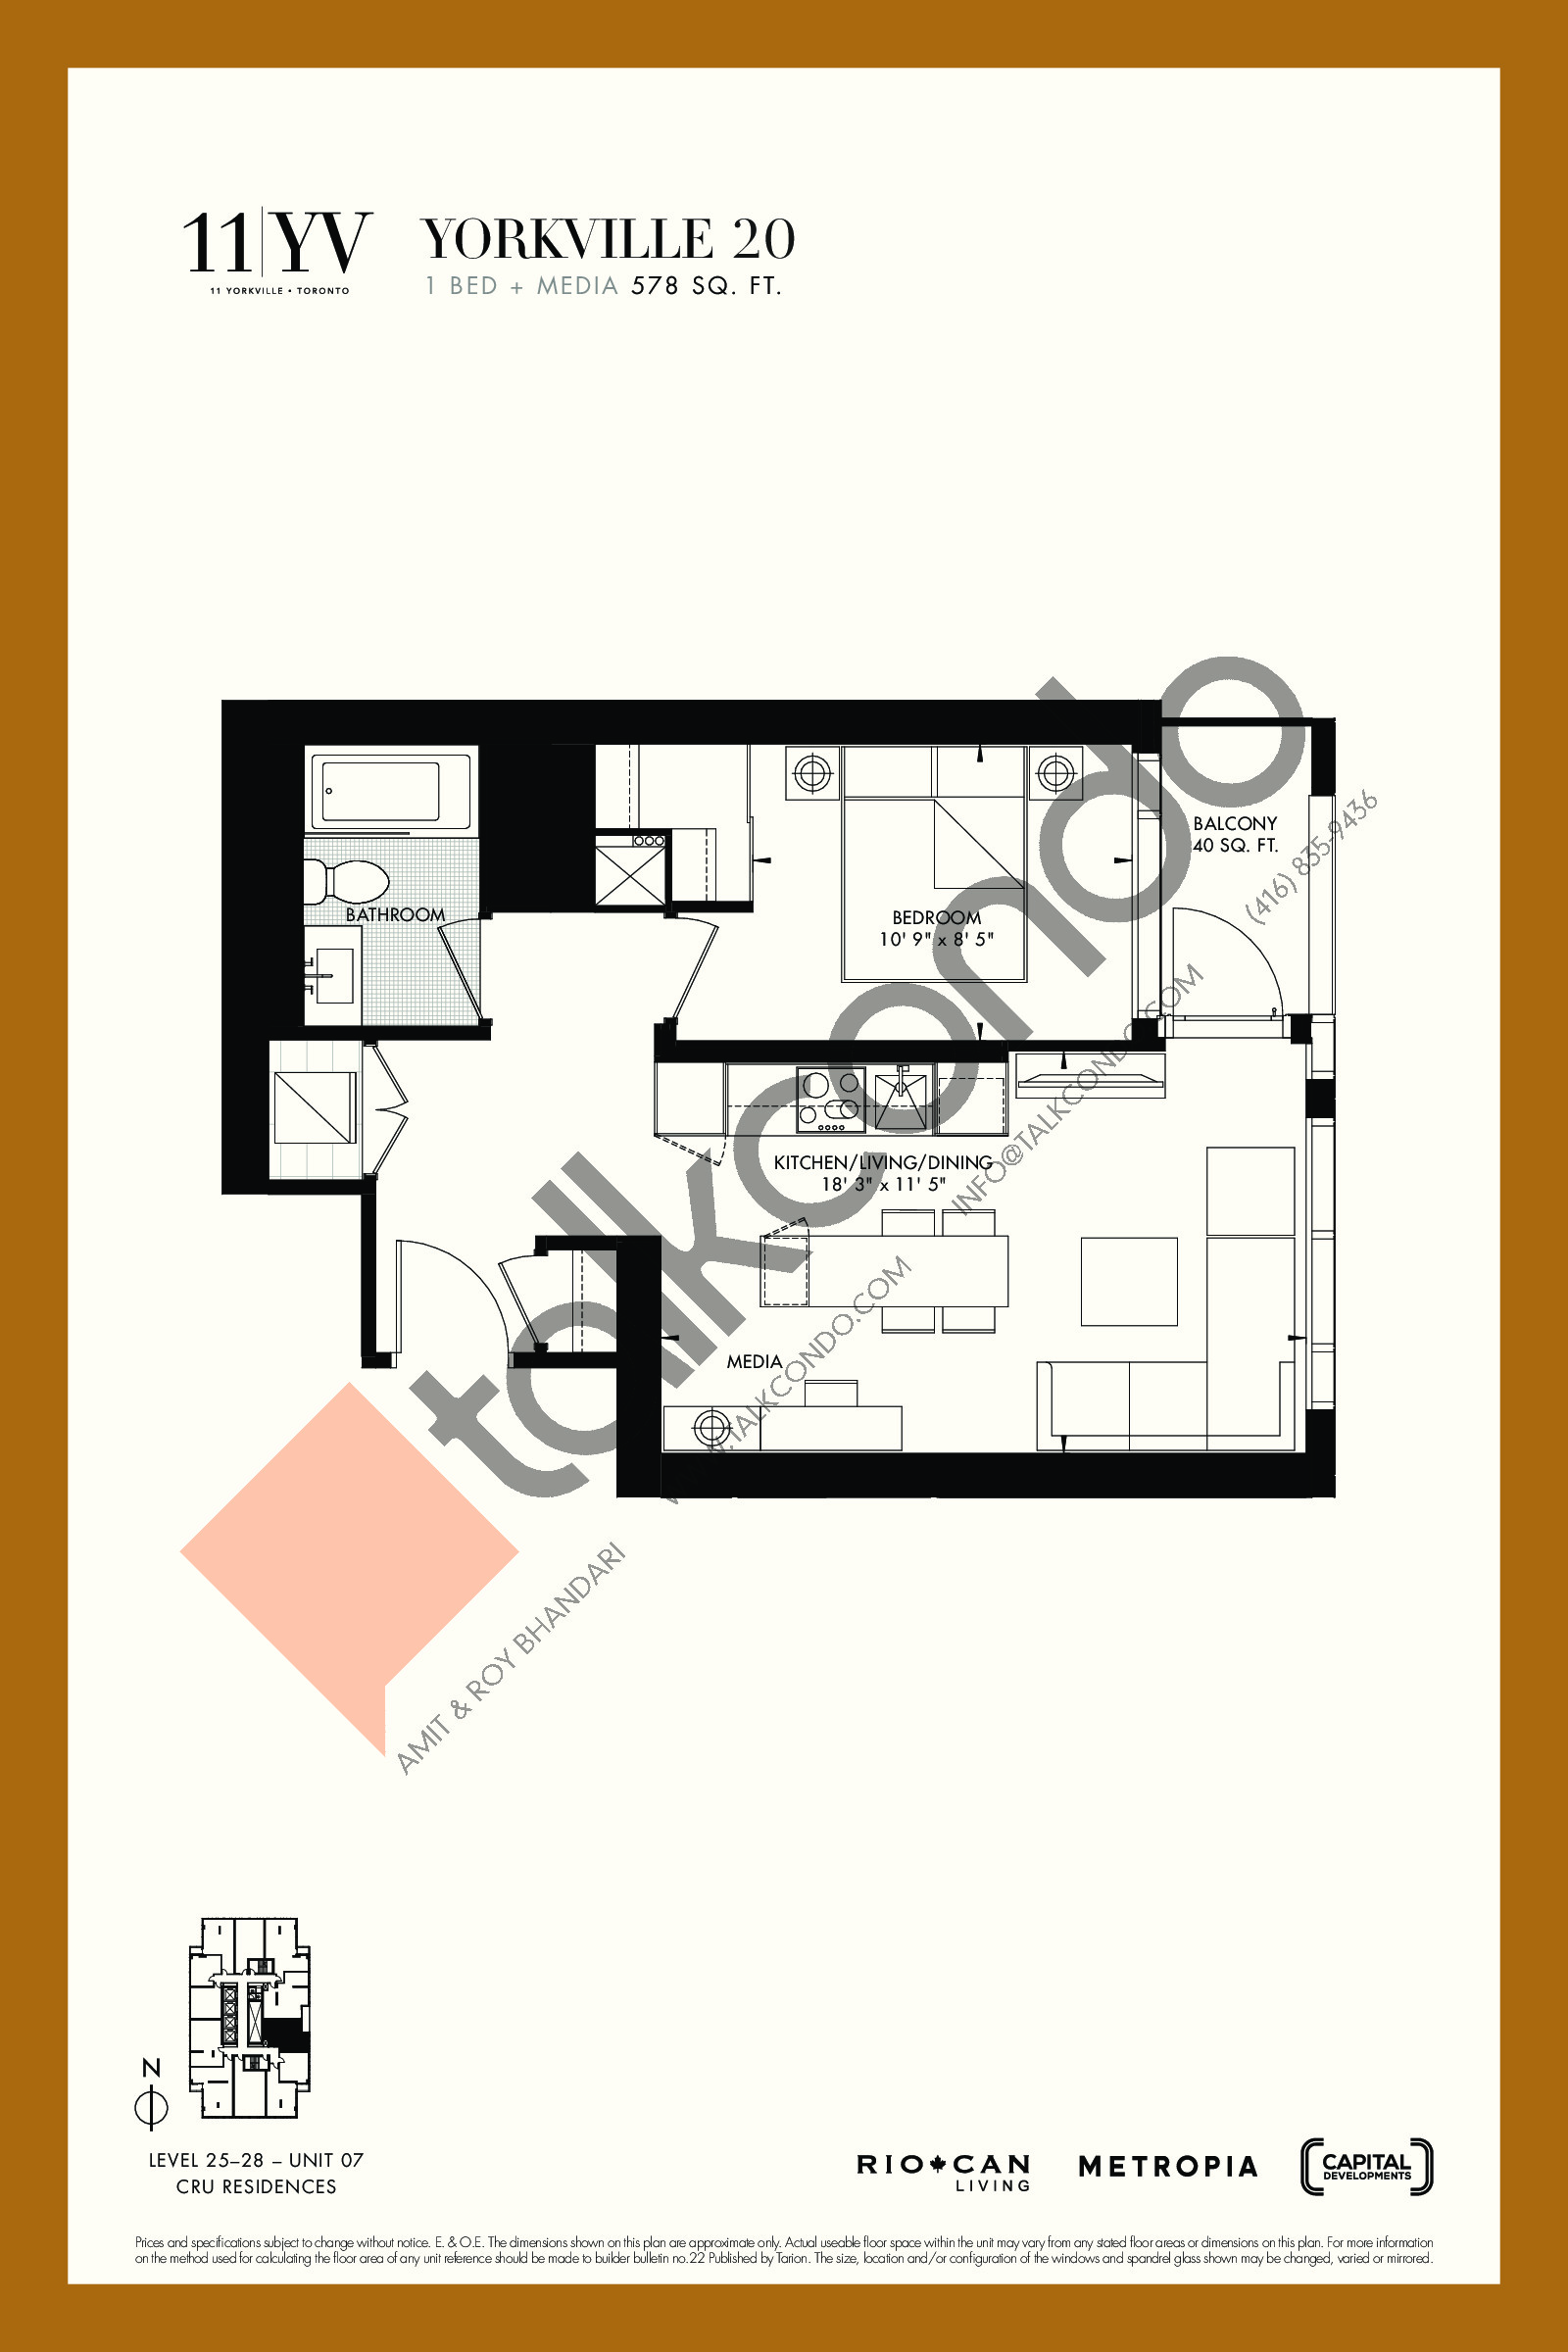 Yorkville 20 Floor Plan at 11YV Condos - 578 sq.ft